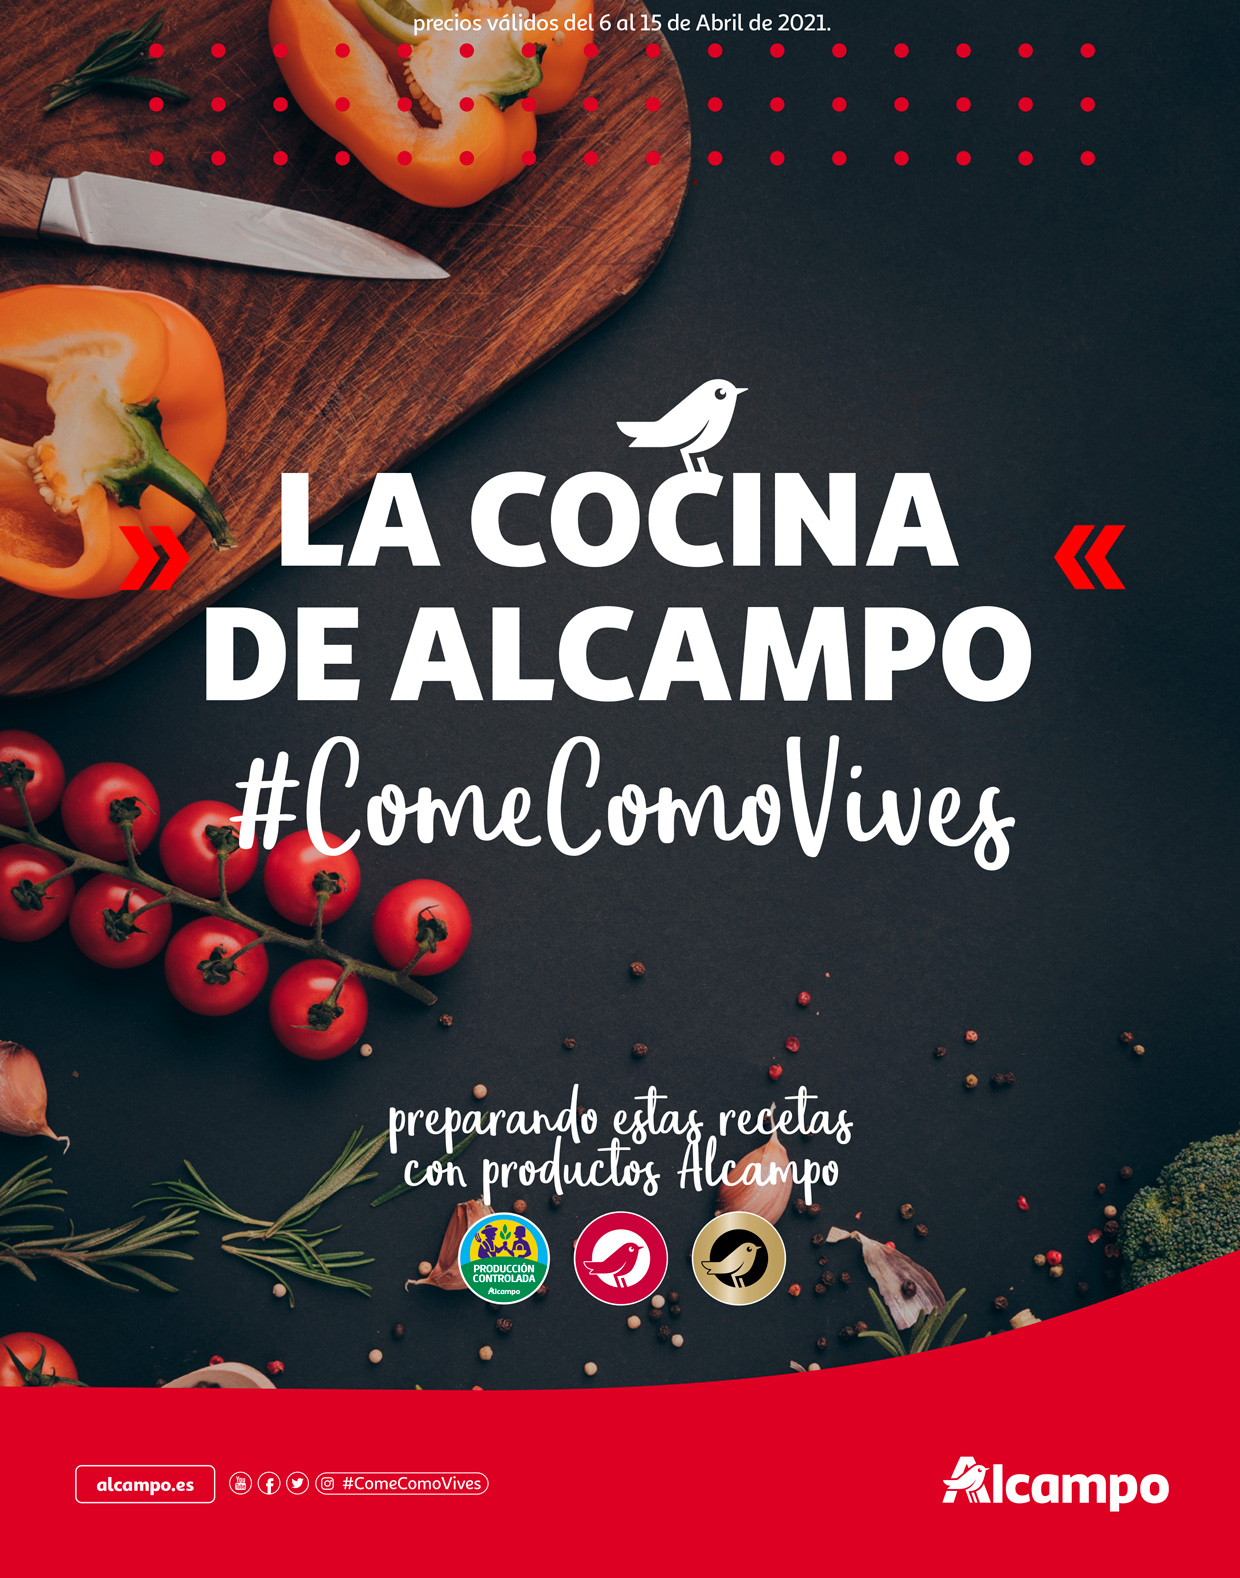 #ComeComoVives